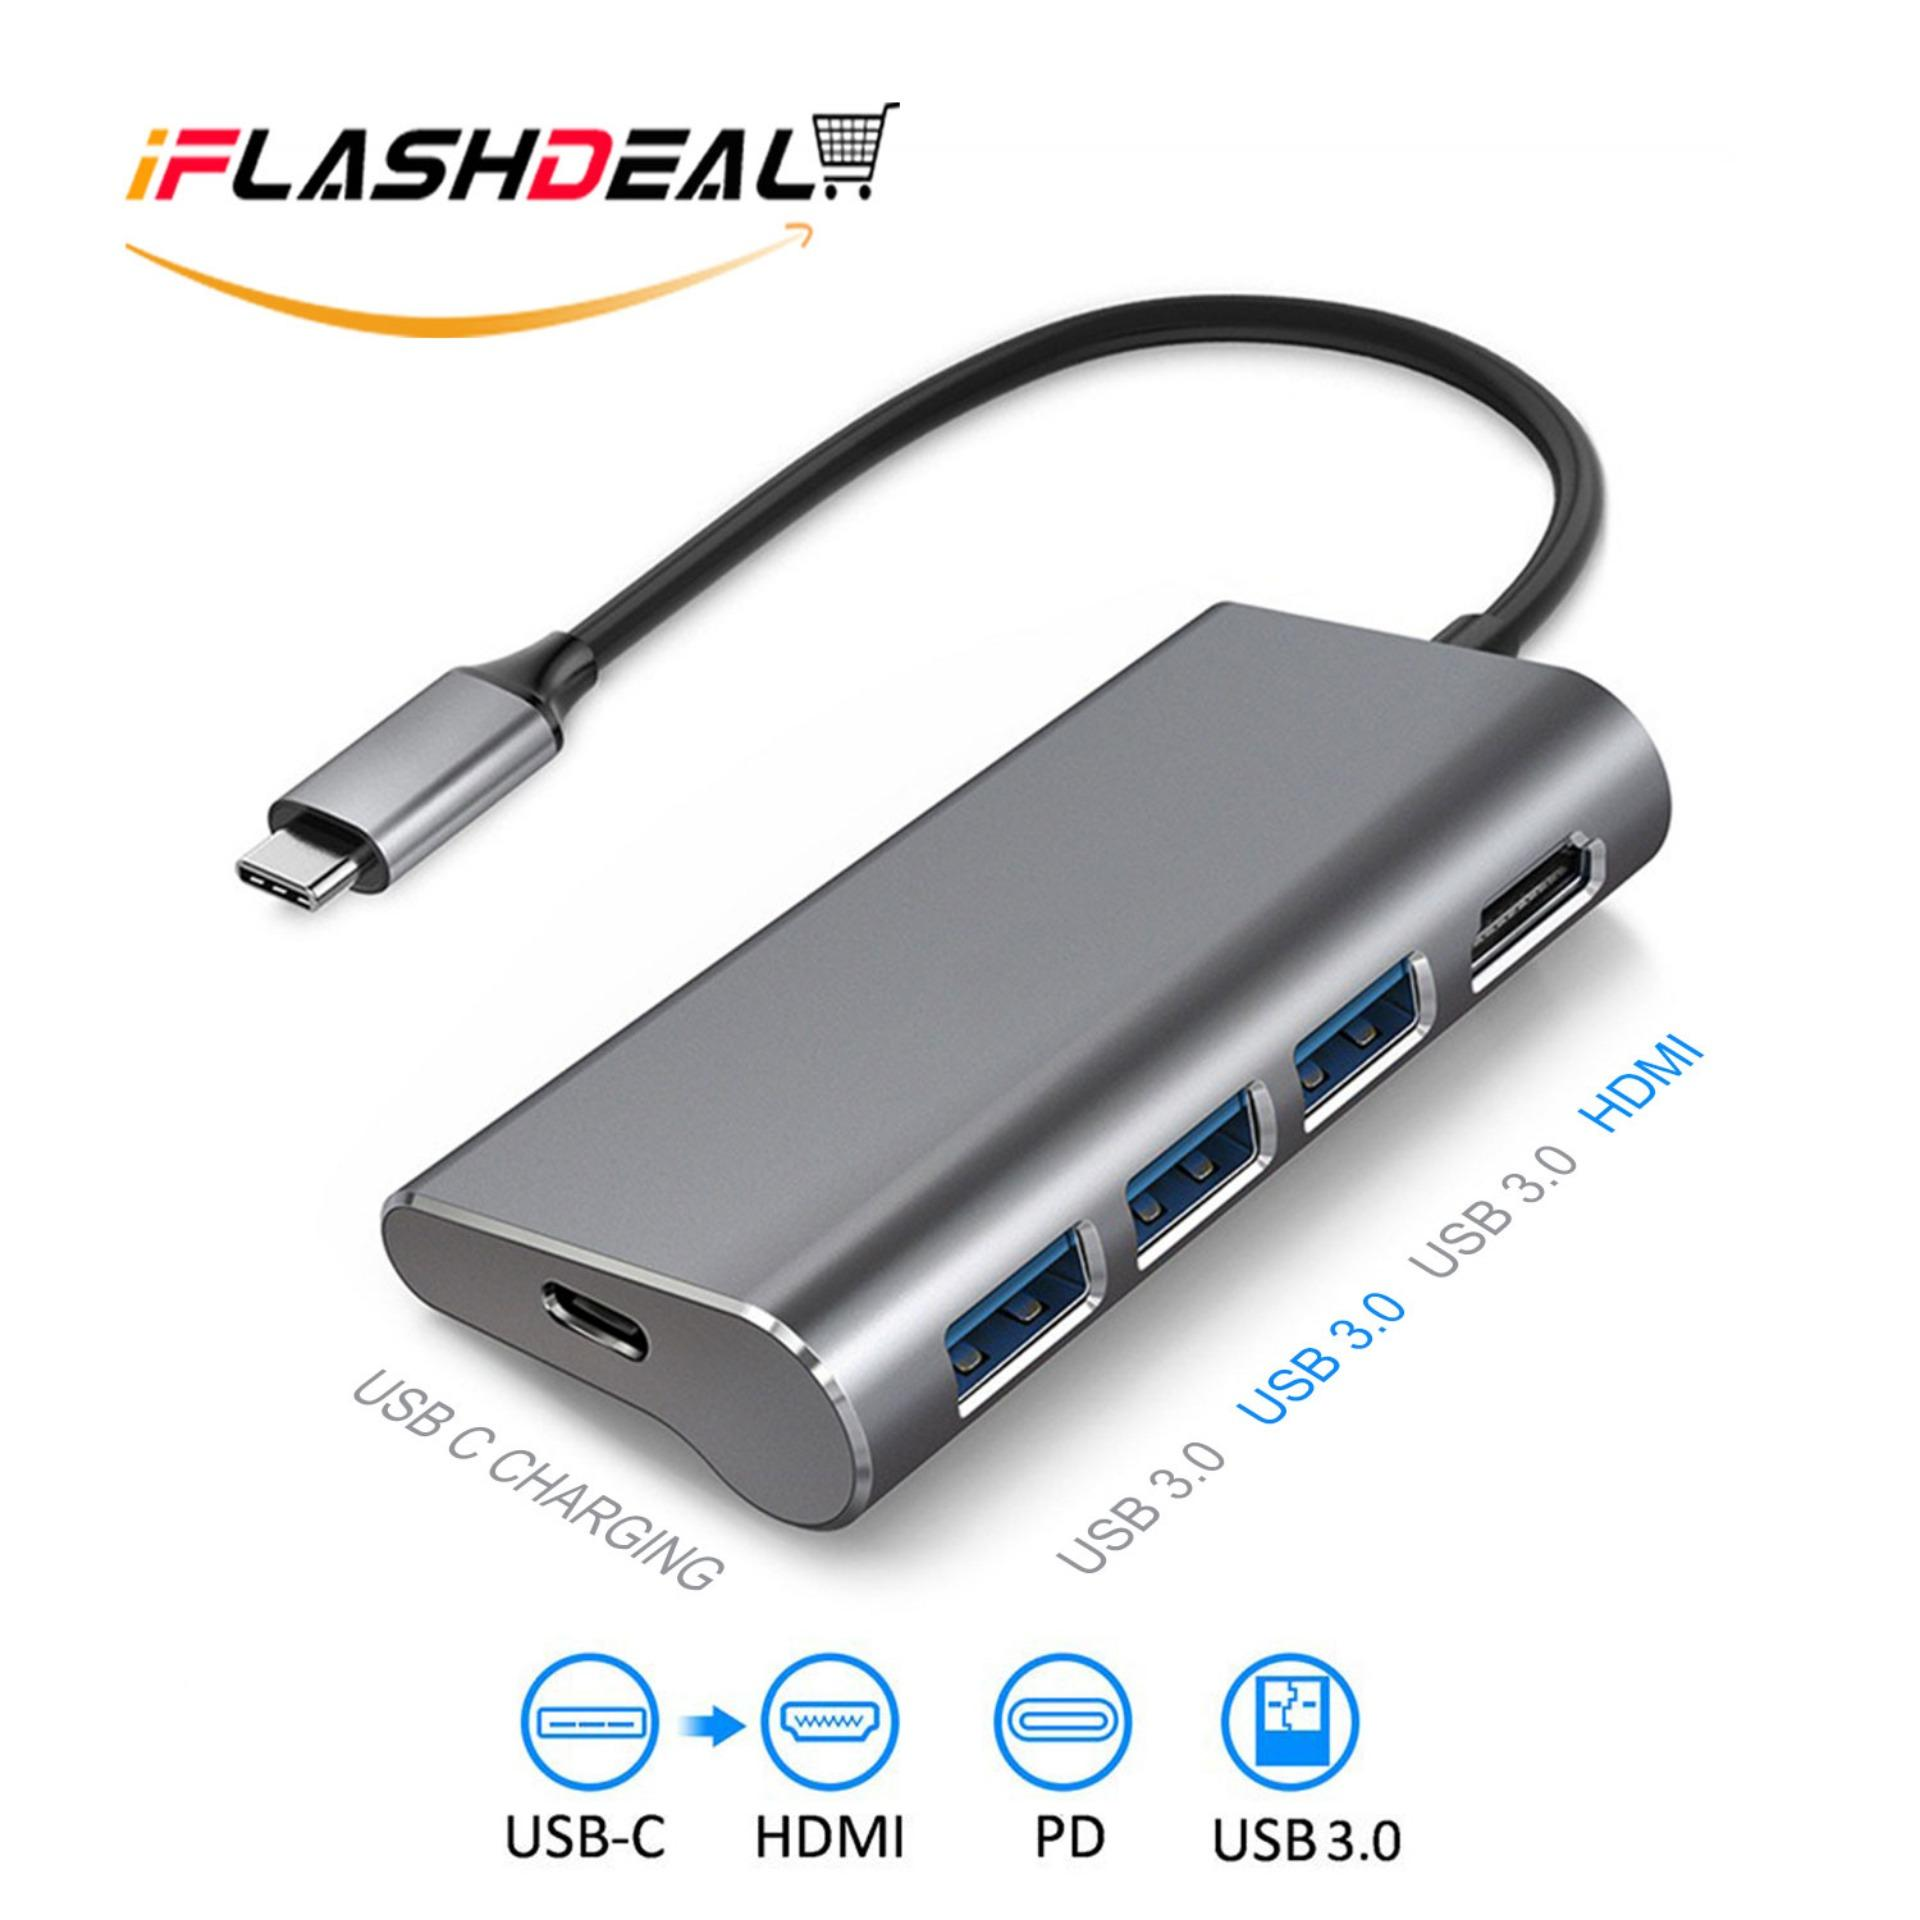 iFlashDeal USB C Hub Type C Video Adapters USB Type C Hub for Macbook Pro USB Type C To HDMI Adapter Dock with 4K HDMI Port, 3 USB 3.0 Ports USB C